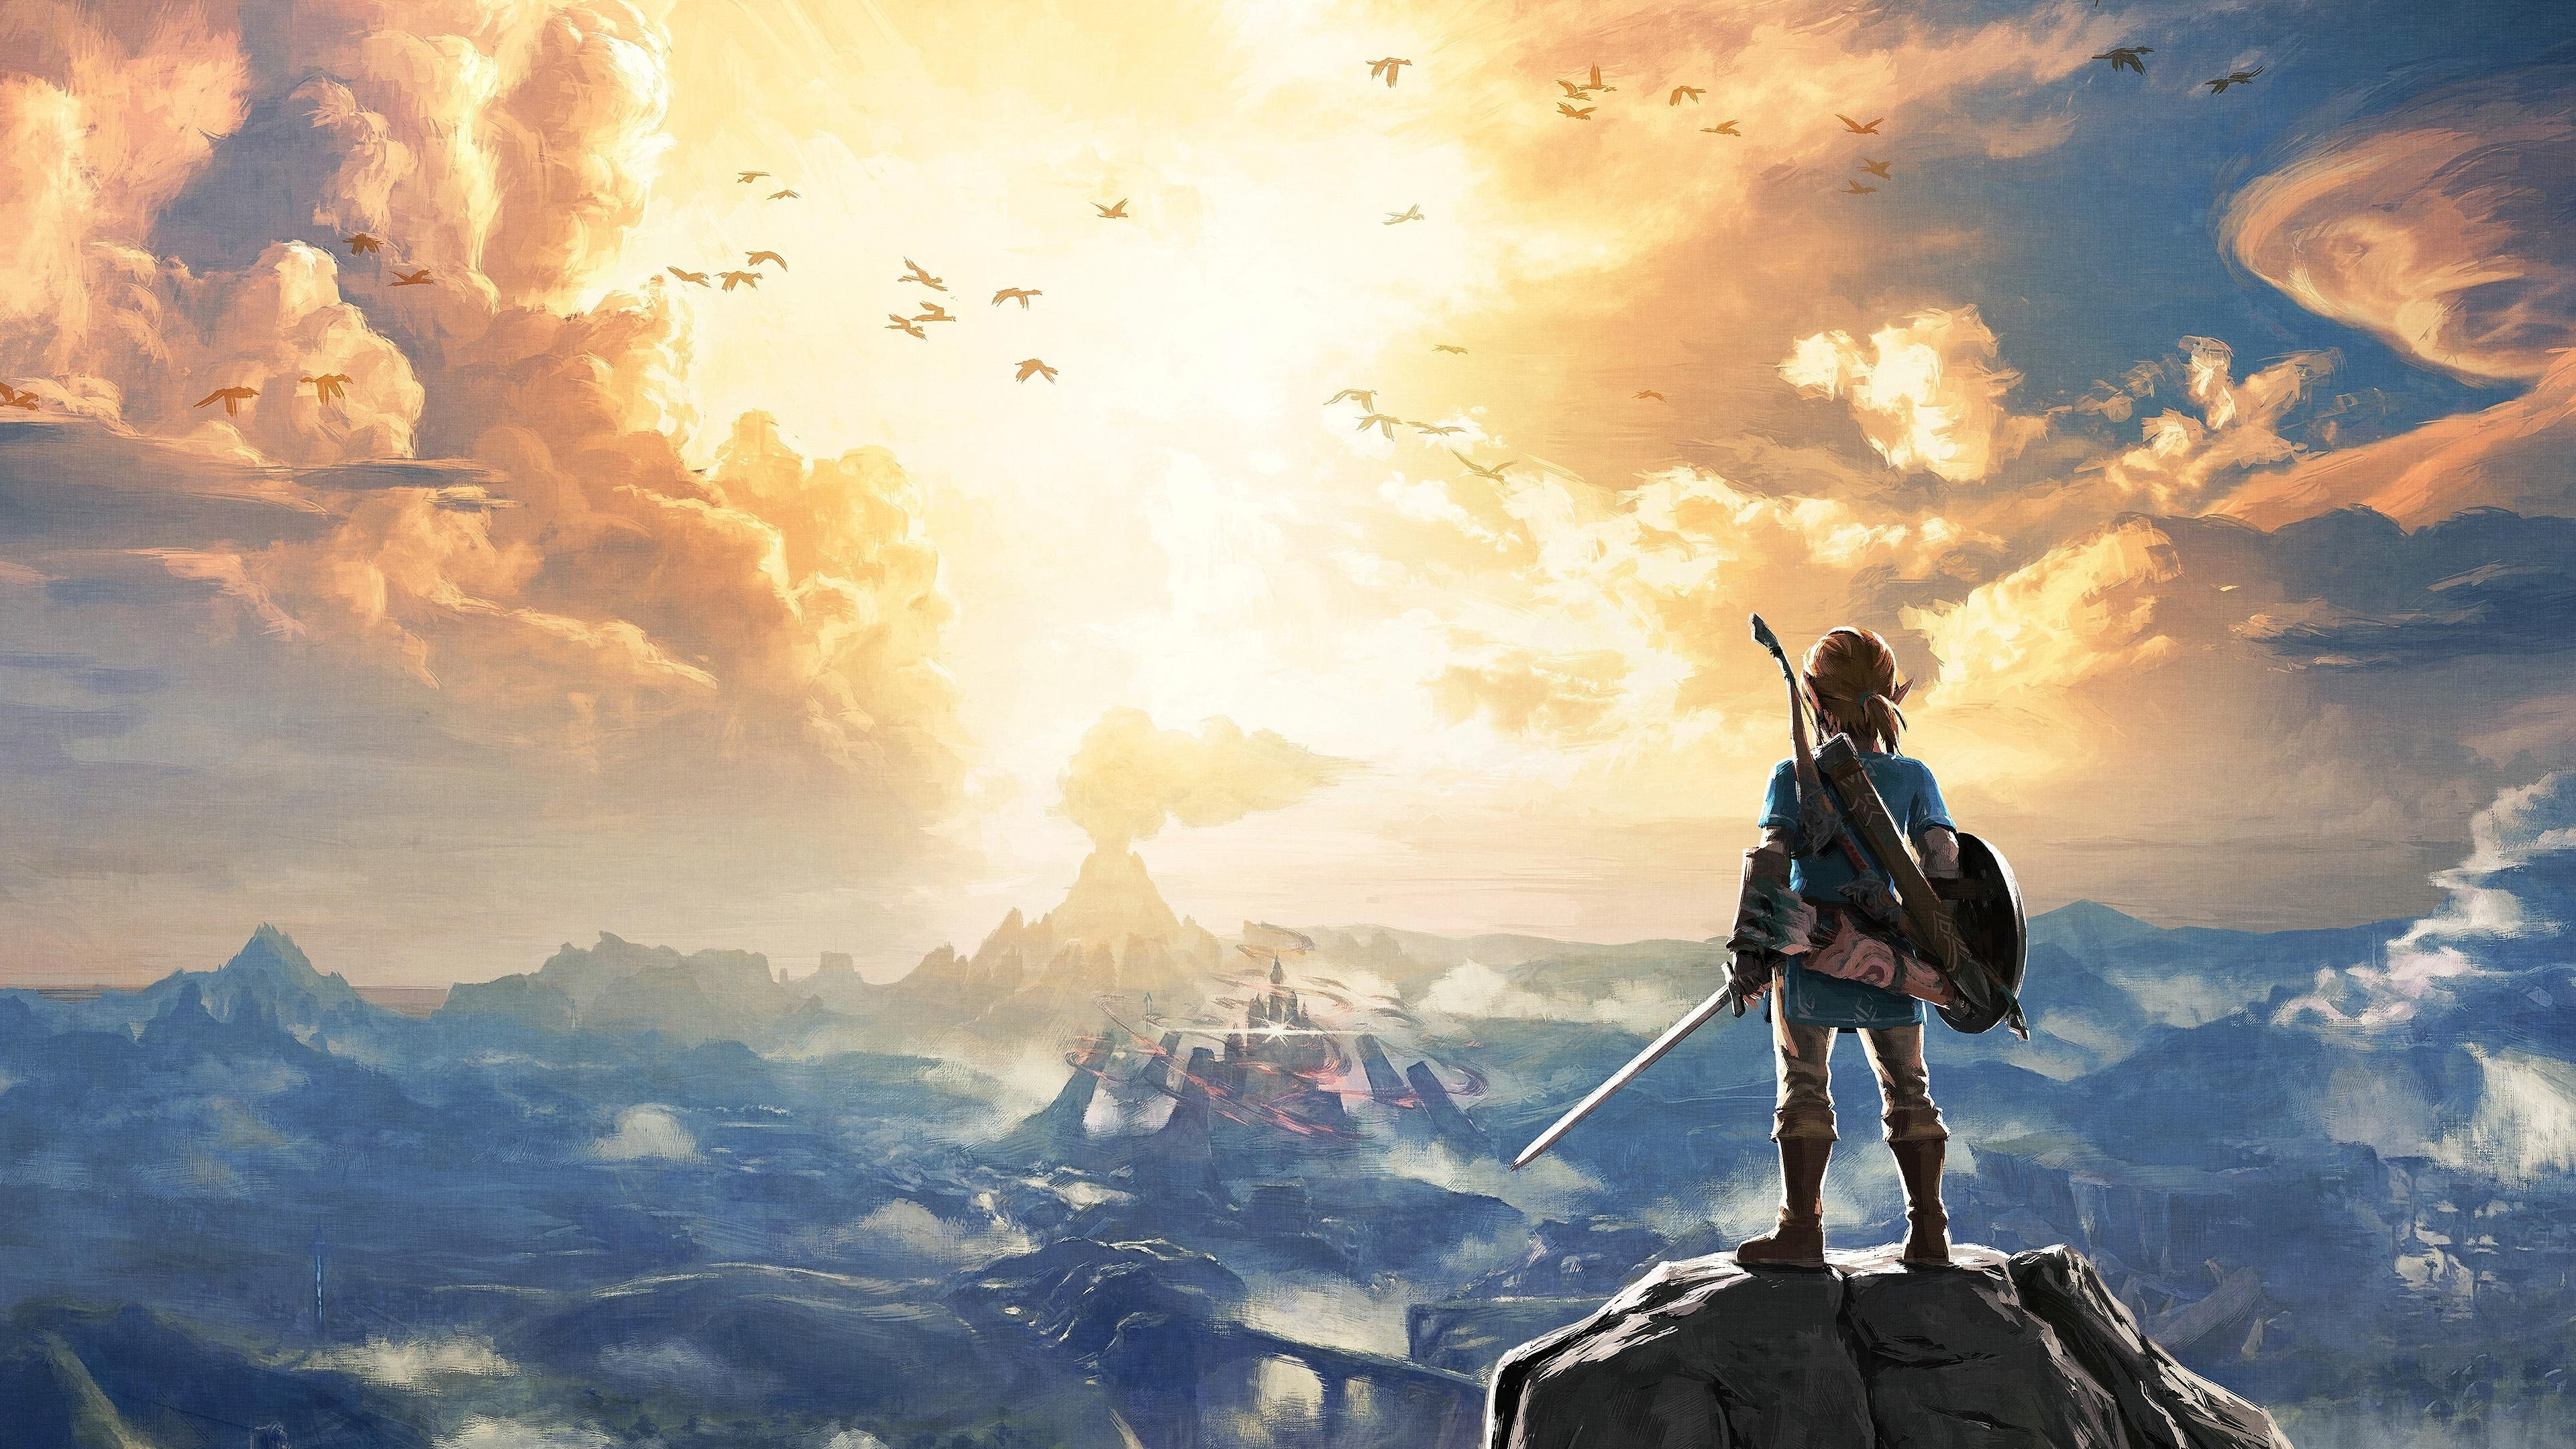 The Legend Of Zelda Breath Of The Wild Wallpapers Wallpapertag